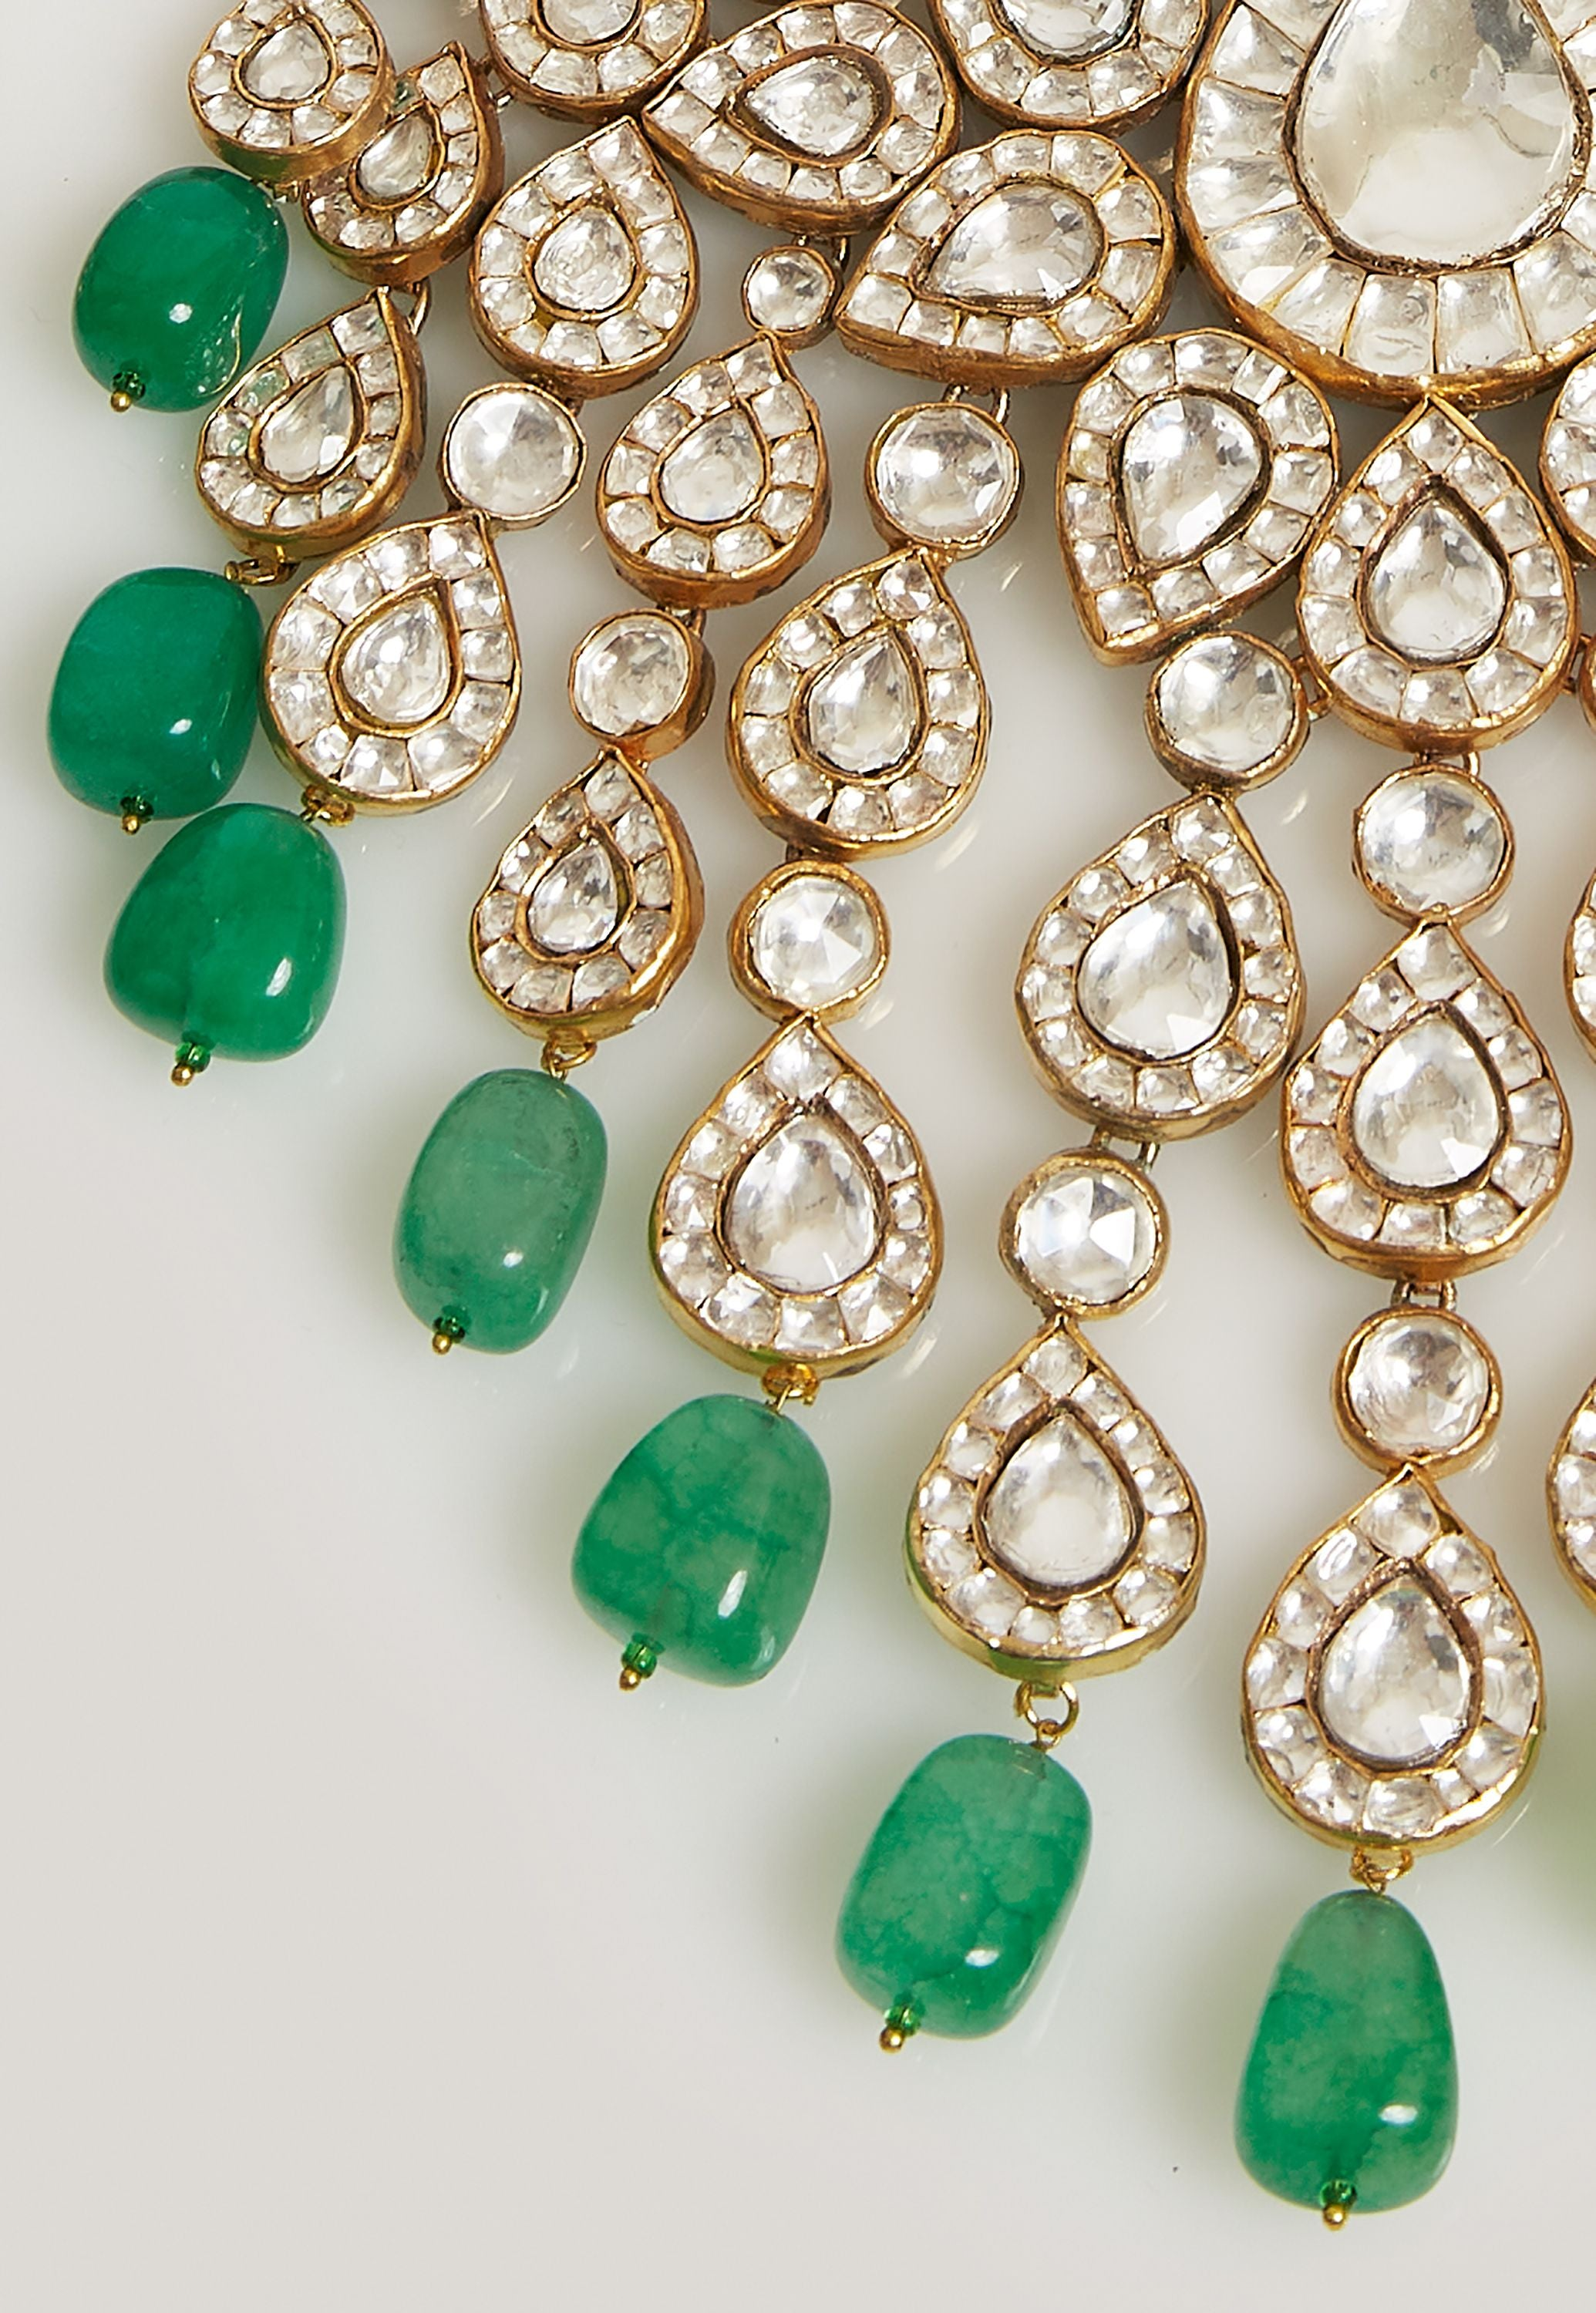 STUNNING EMERALD GREEN JEWELRY SET